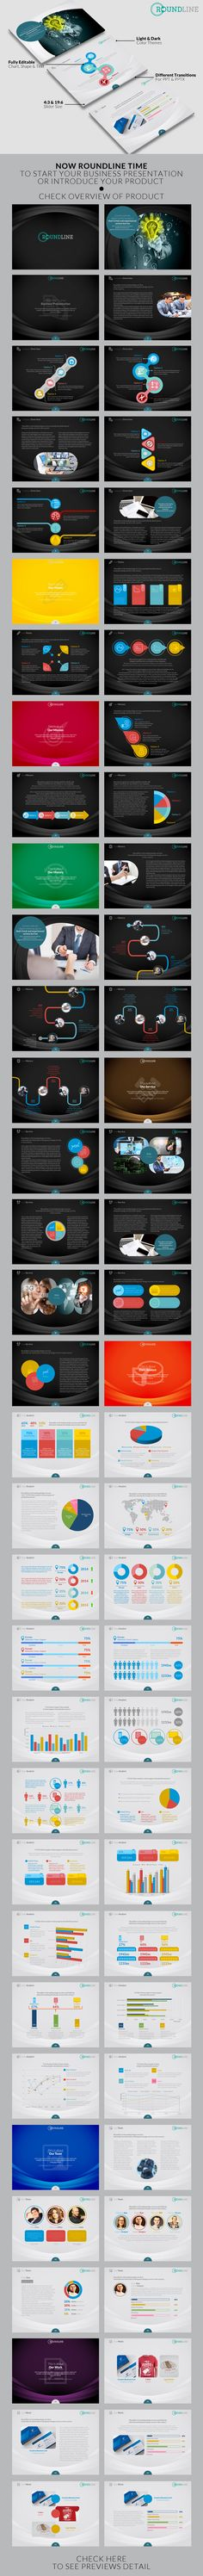 Buy Roundline Powerpoint Template by CreativeComplex on GraphicRiver. Roundline Powerpoint Template Presentation template made on corporate or technology theme with simple contents and m. Keynote Design, Powerpoint Design, Ppt Design, Slide Design, Corporate Presentation, Presentation Design Template, Presentation Slides, Powerpoint Presentation Templates, Keynote Template